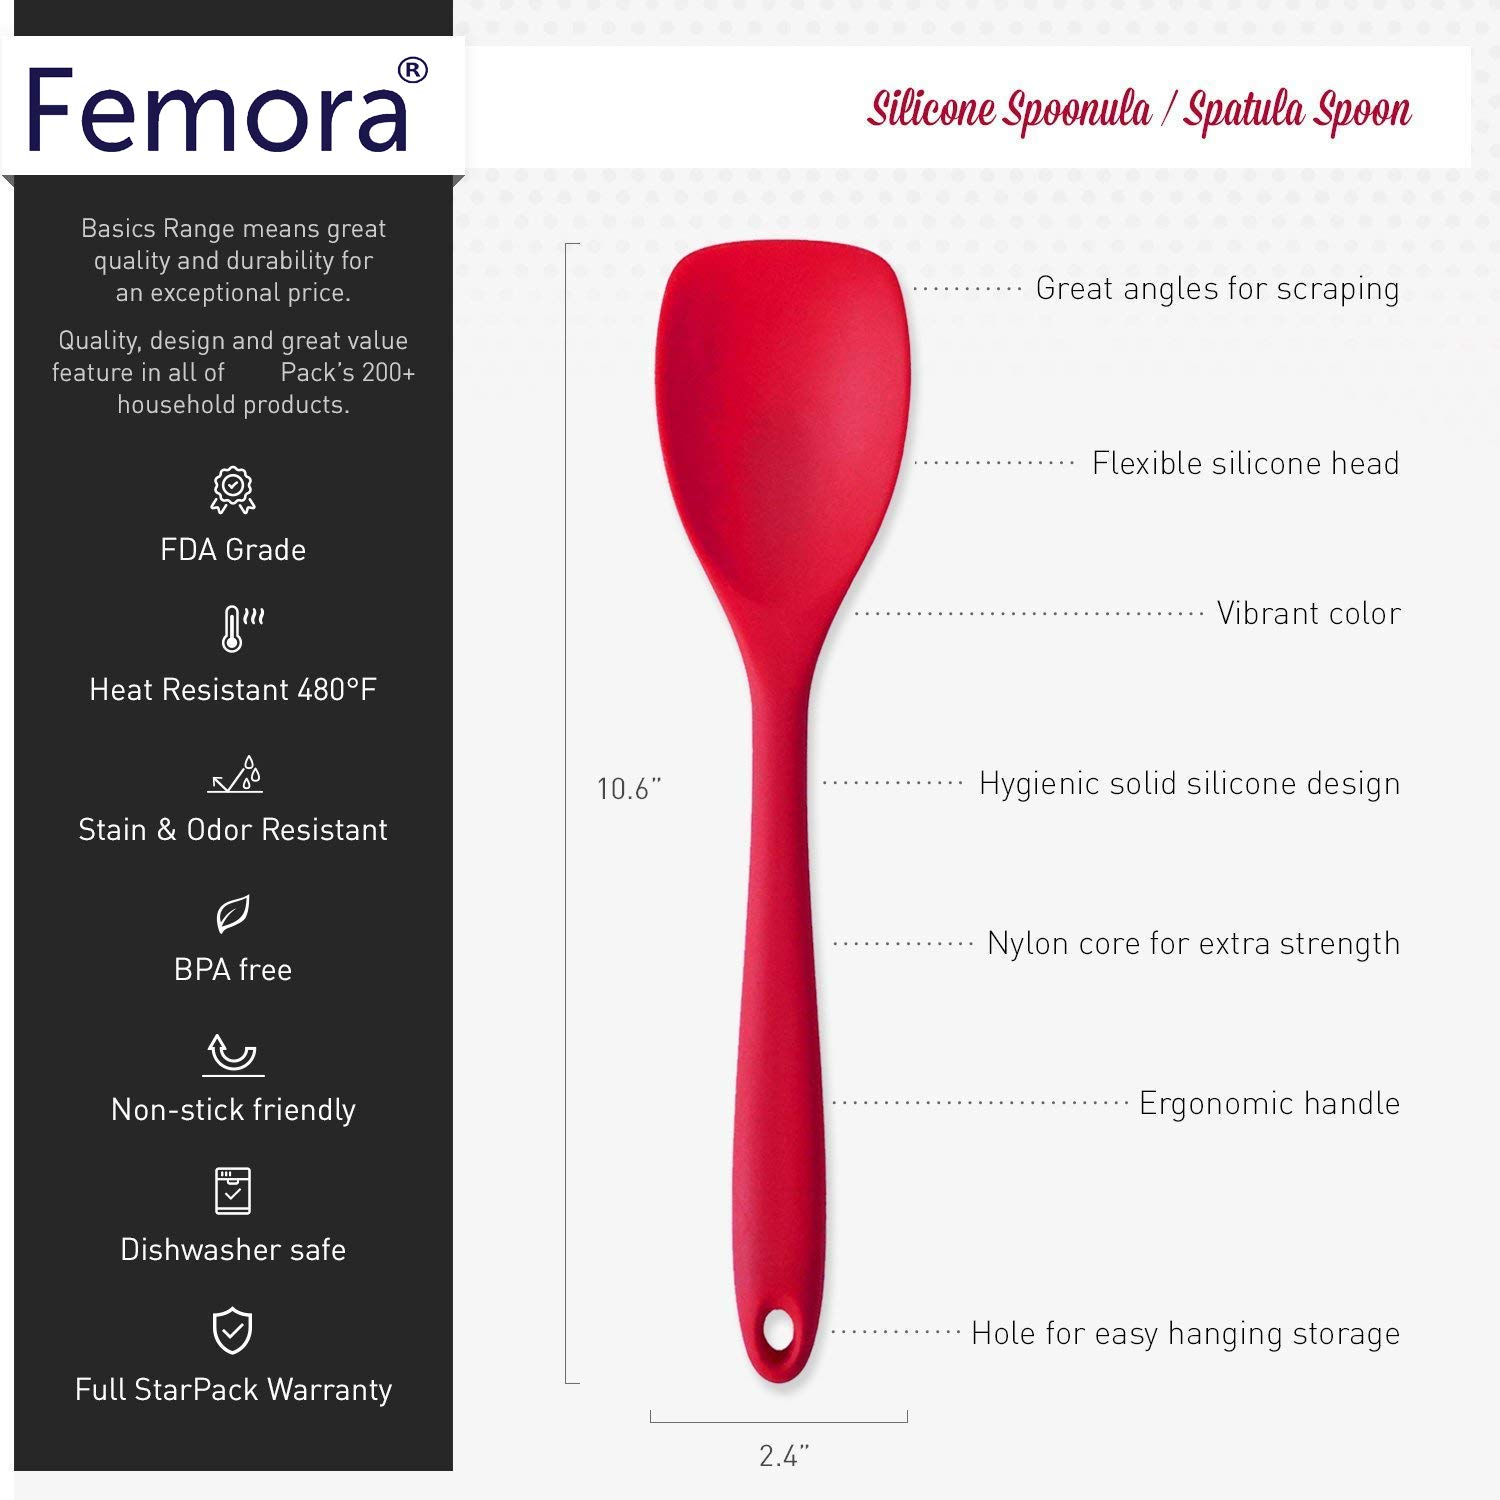 Femora Silicone Premium Spoon with Grip Handle, Red, 1 Year Warranty